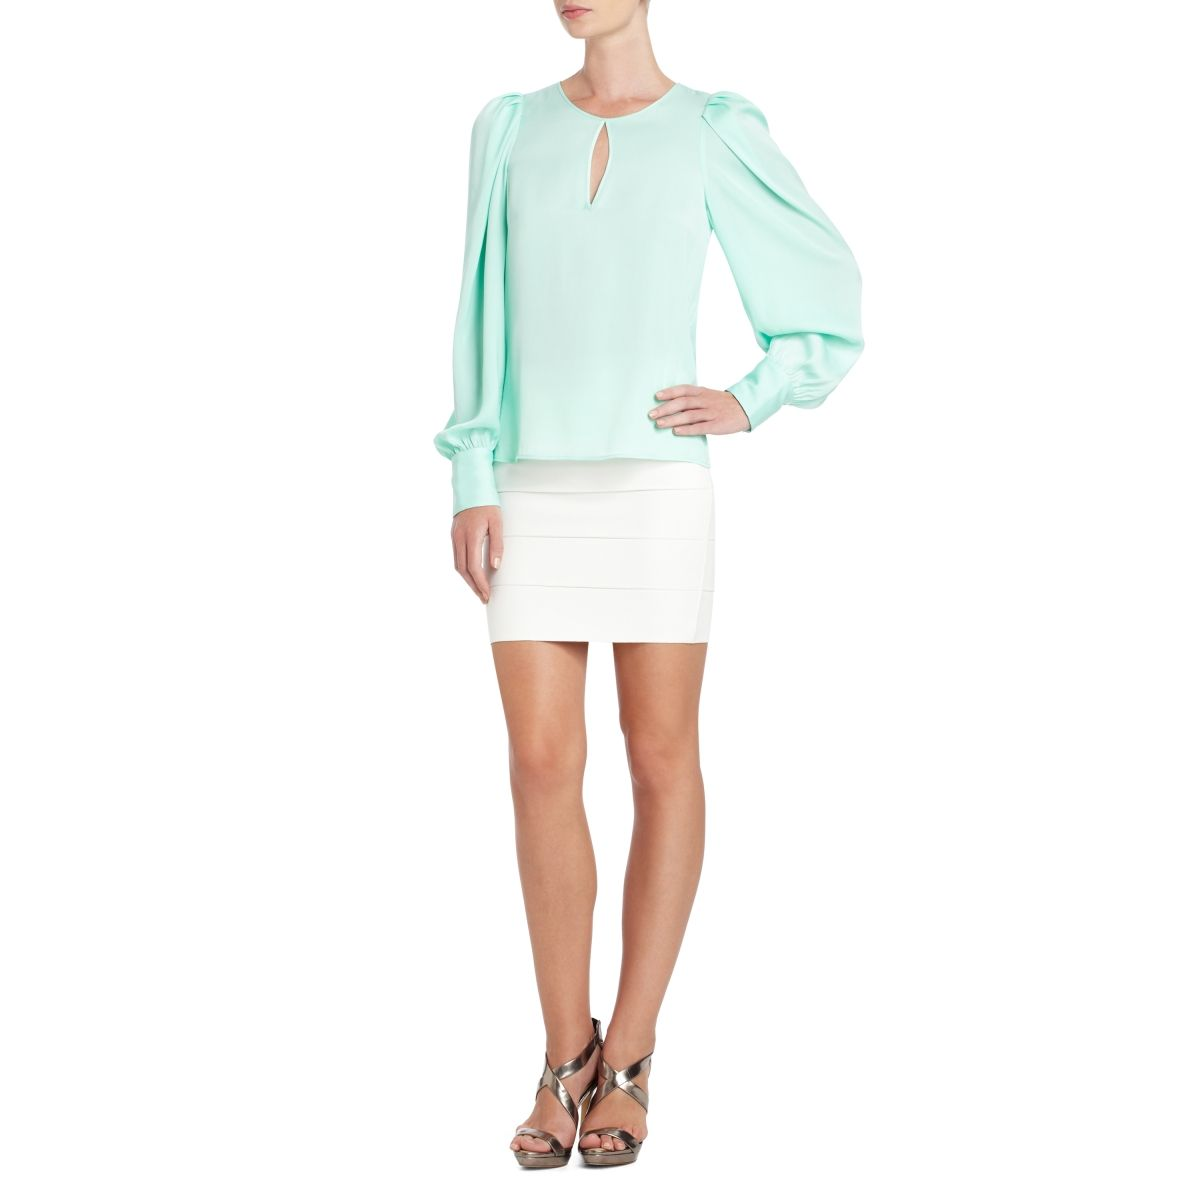 BCBGMAXAZRIA - SHOP BY CATEGORY  TOPS  tops VIEW ALL  SHINA TOP- xs ... 56473494b